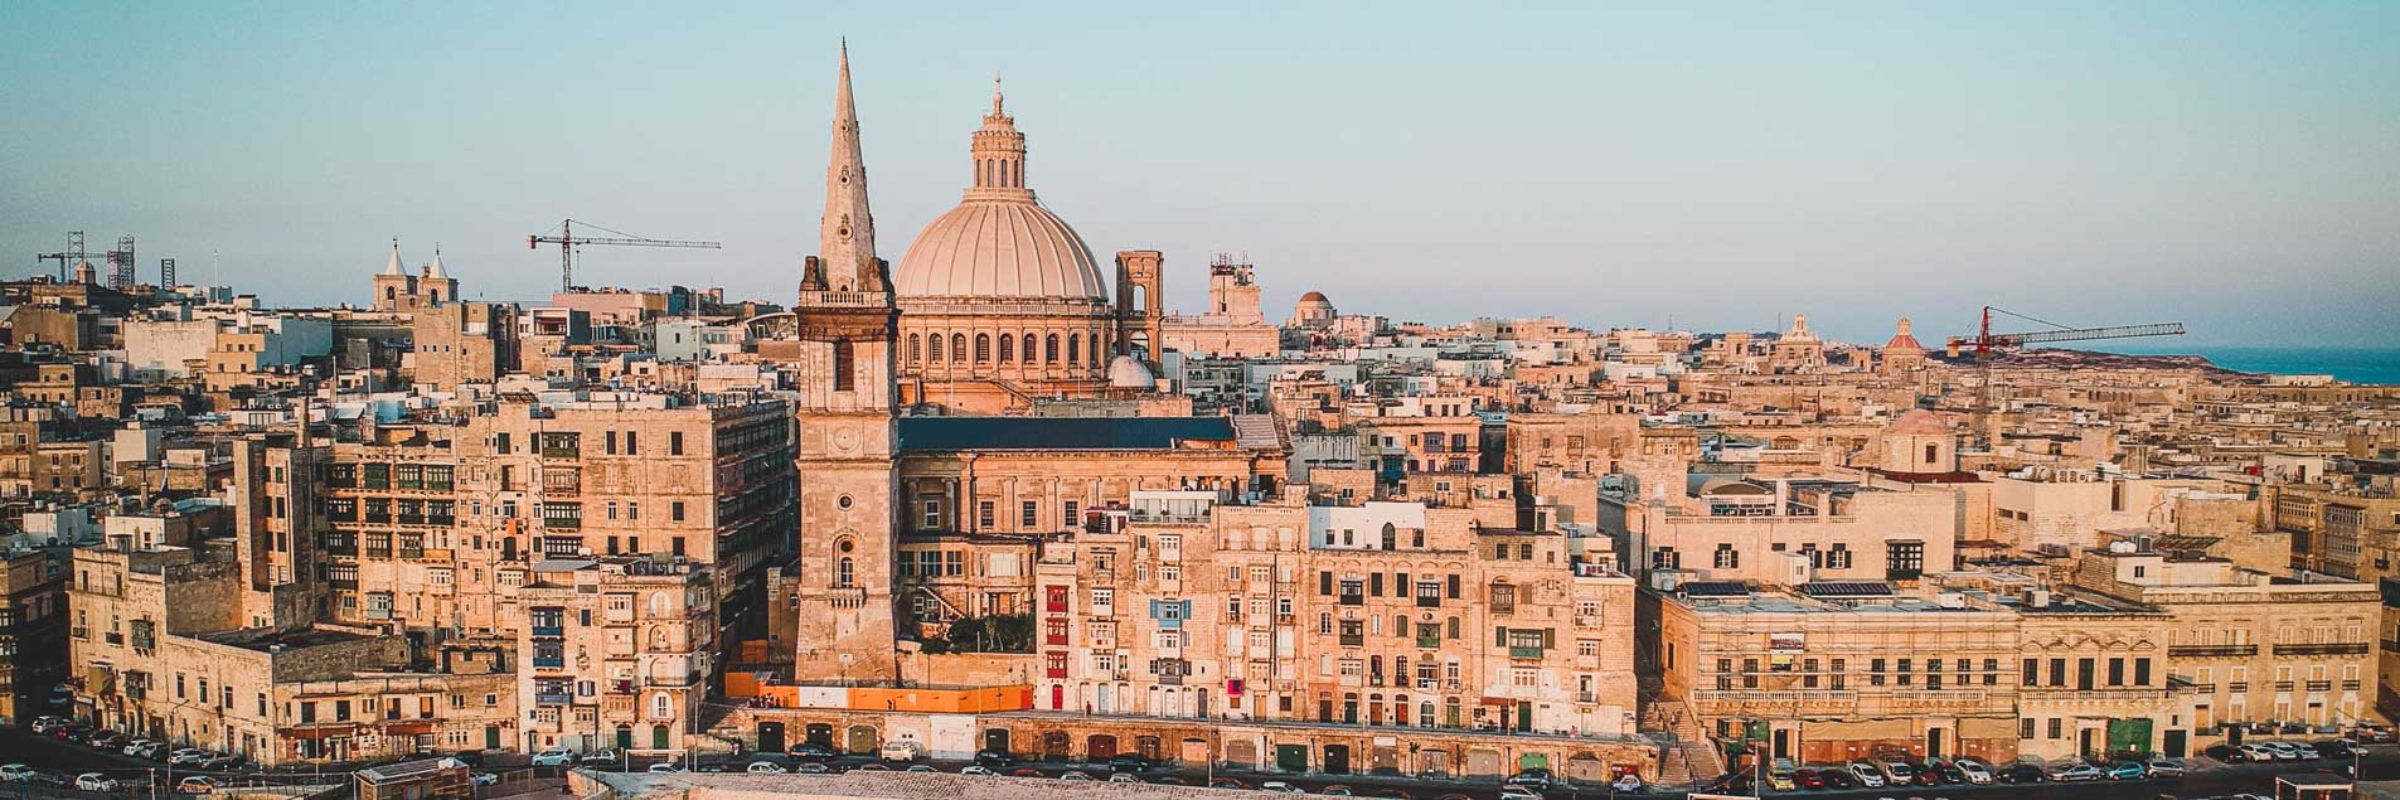 Top-10-fun-things-to-do-in-Malta-S